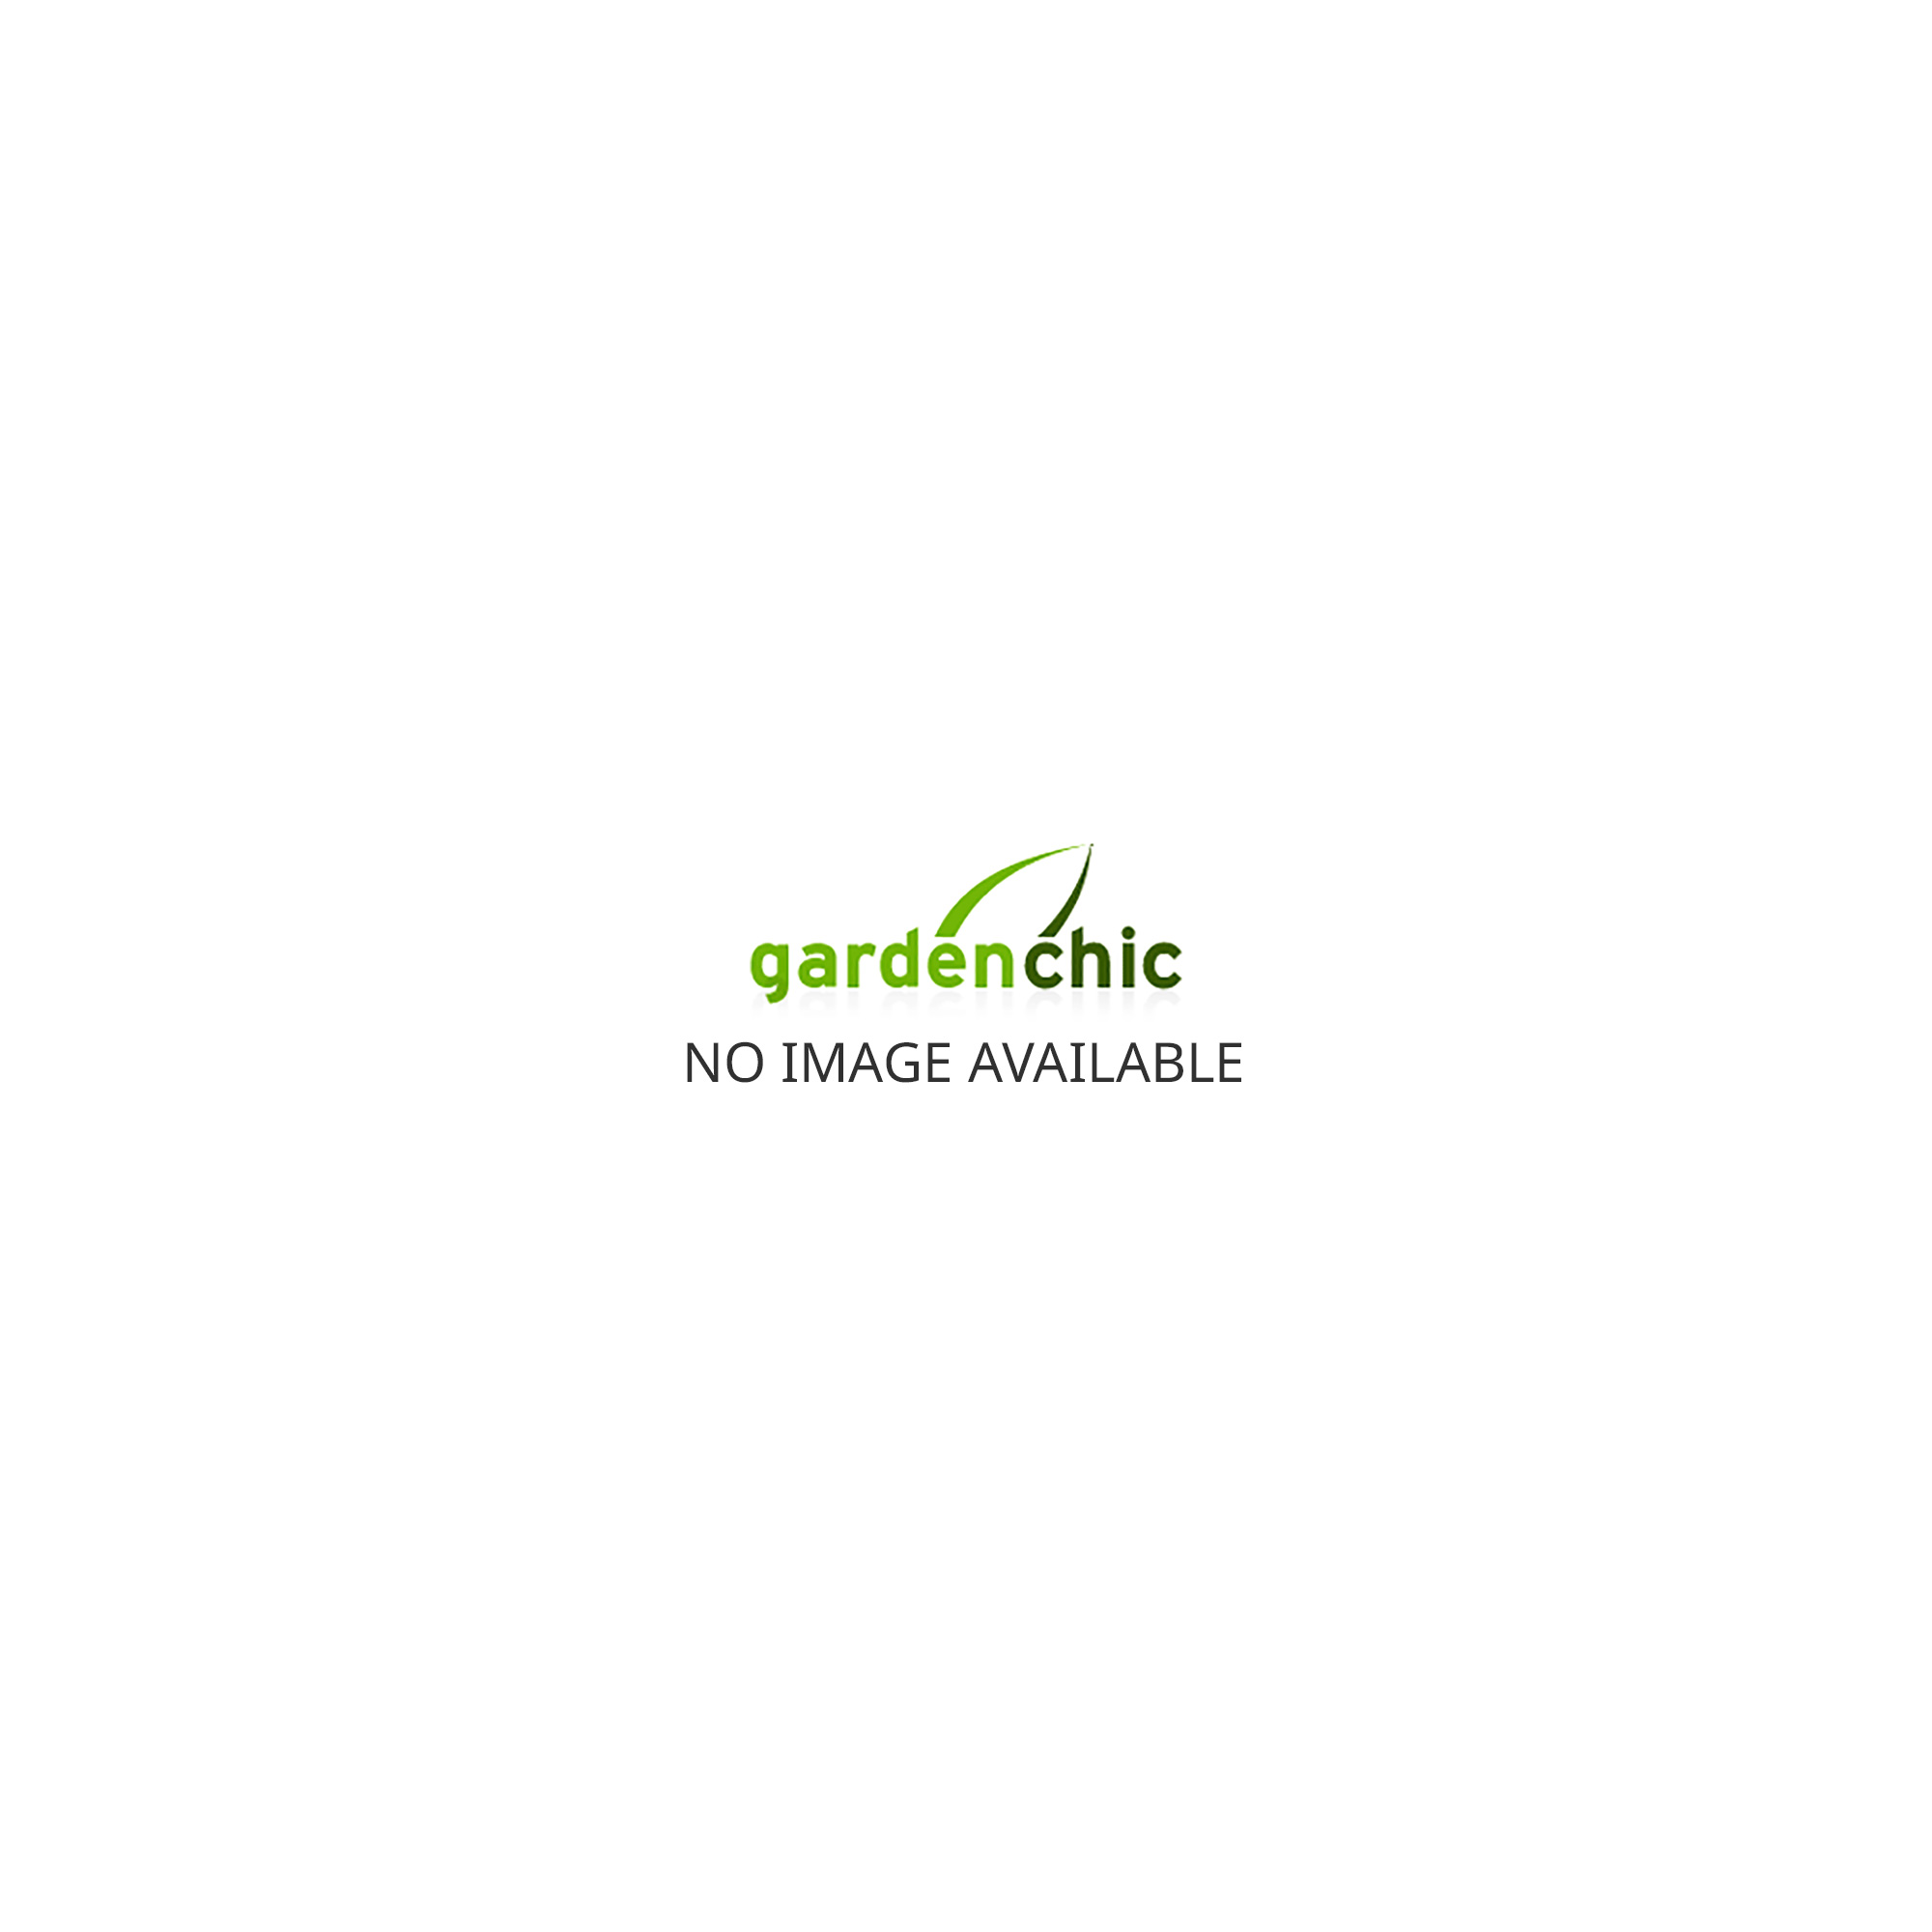 Orion 5000 8ft x 6ft Greenhouse - Green FREE Matching Base until APRIL 2018